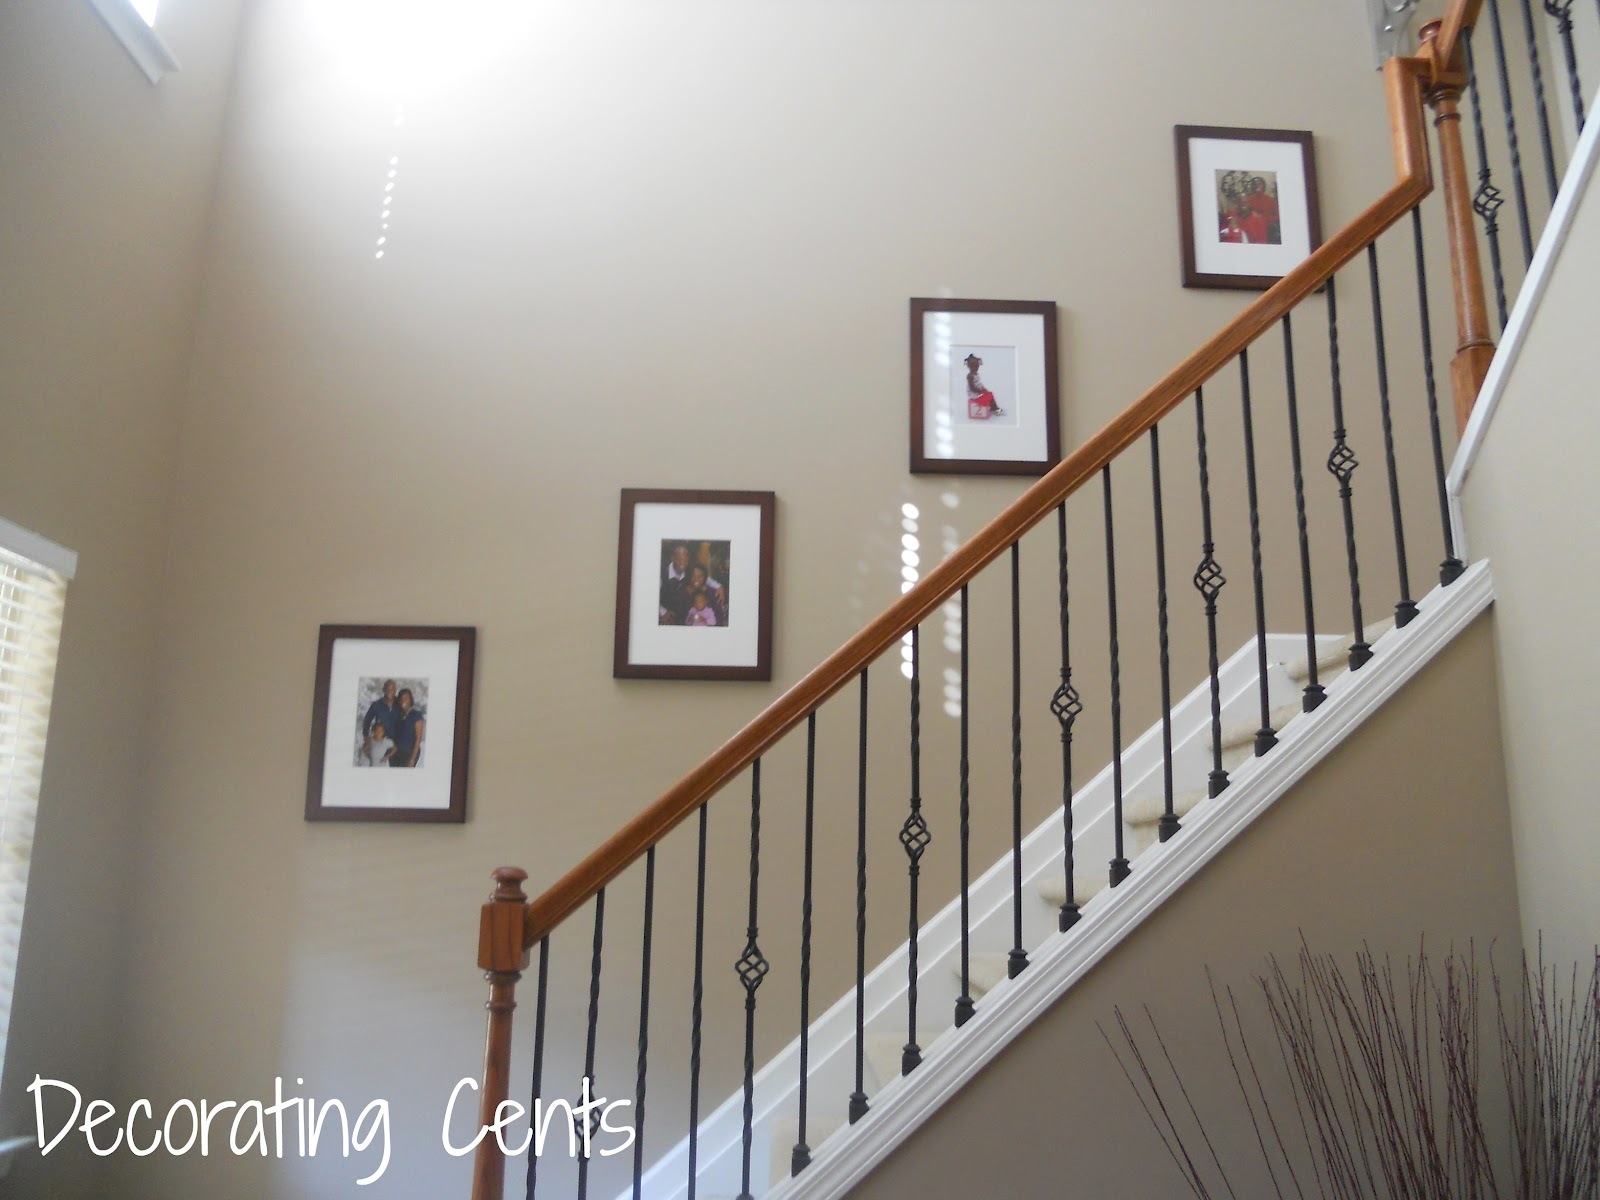 Wall Decor For Stairs : Ideas about stairway wall decorating on